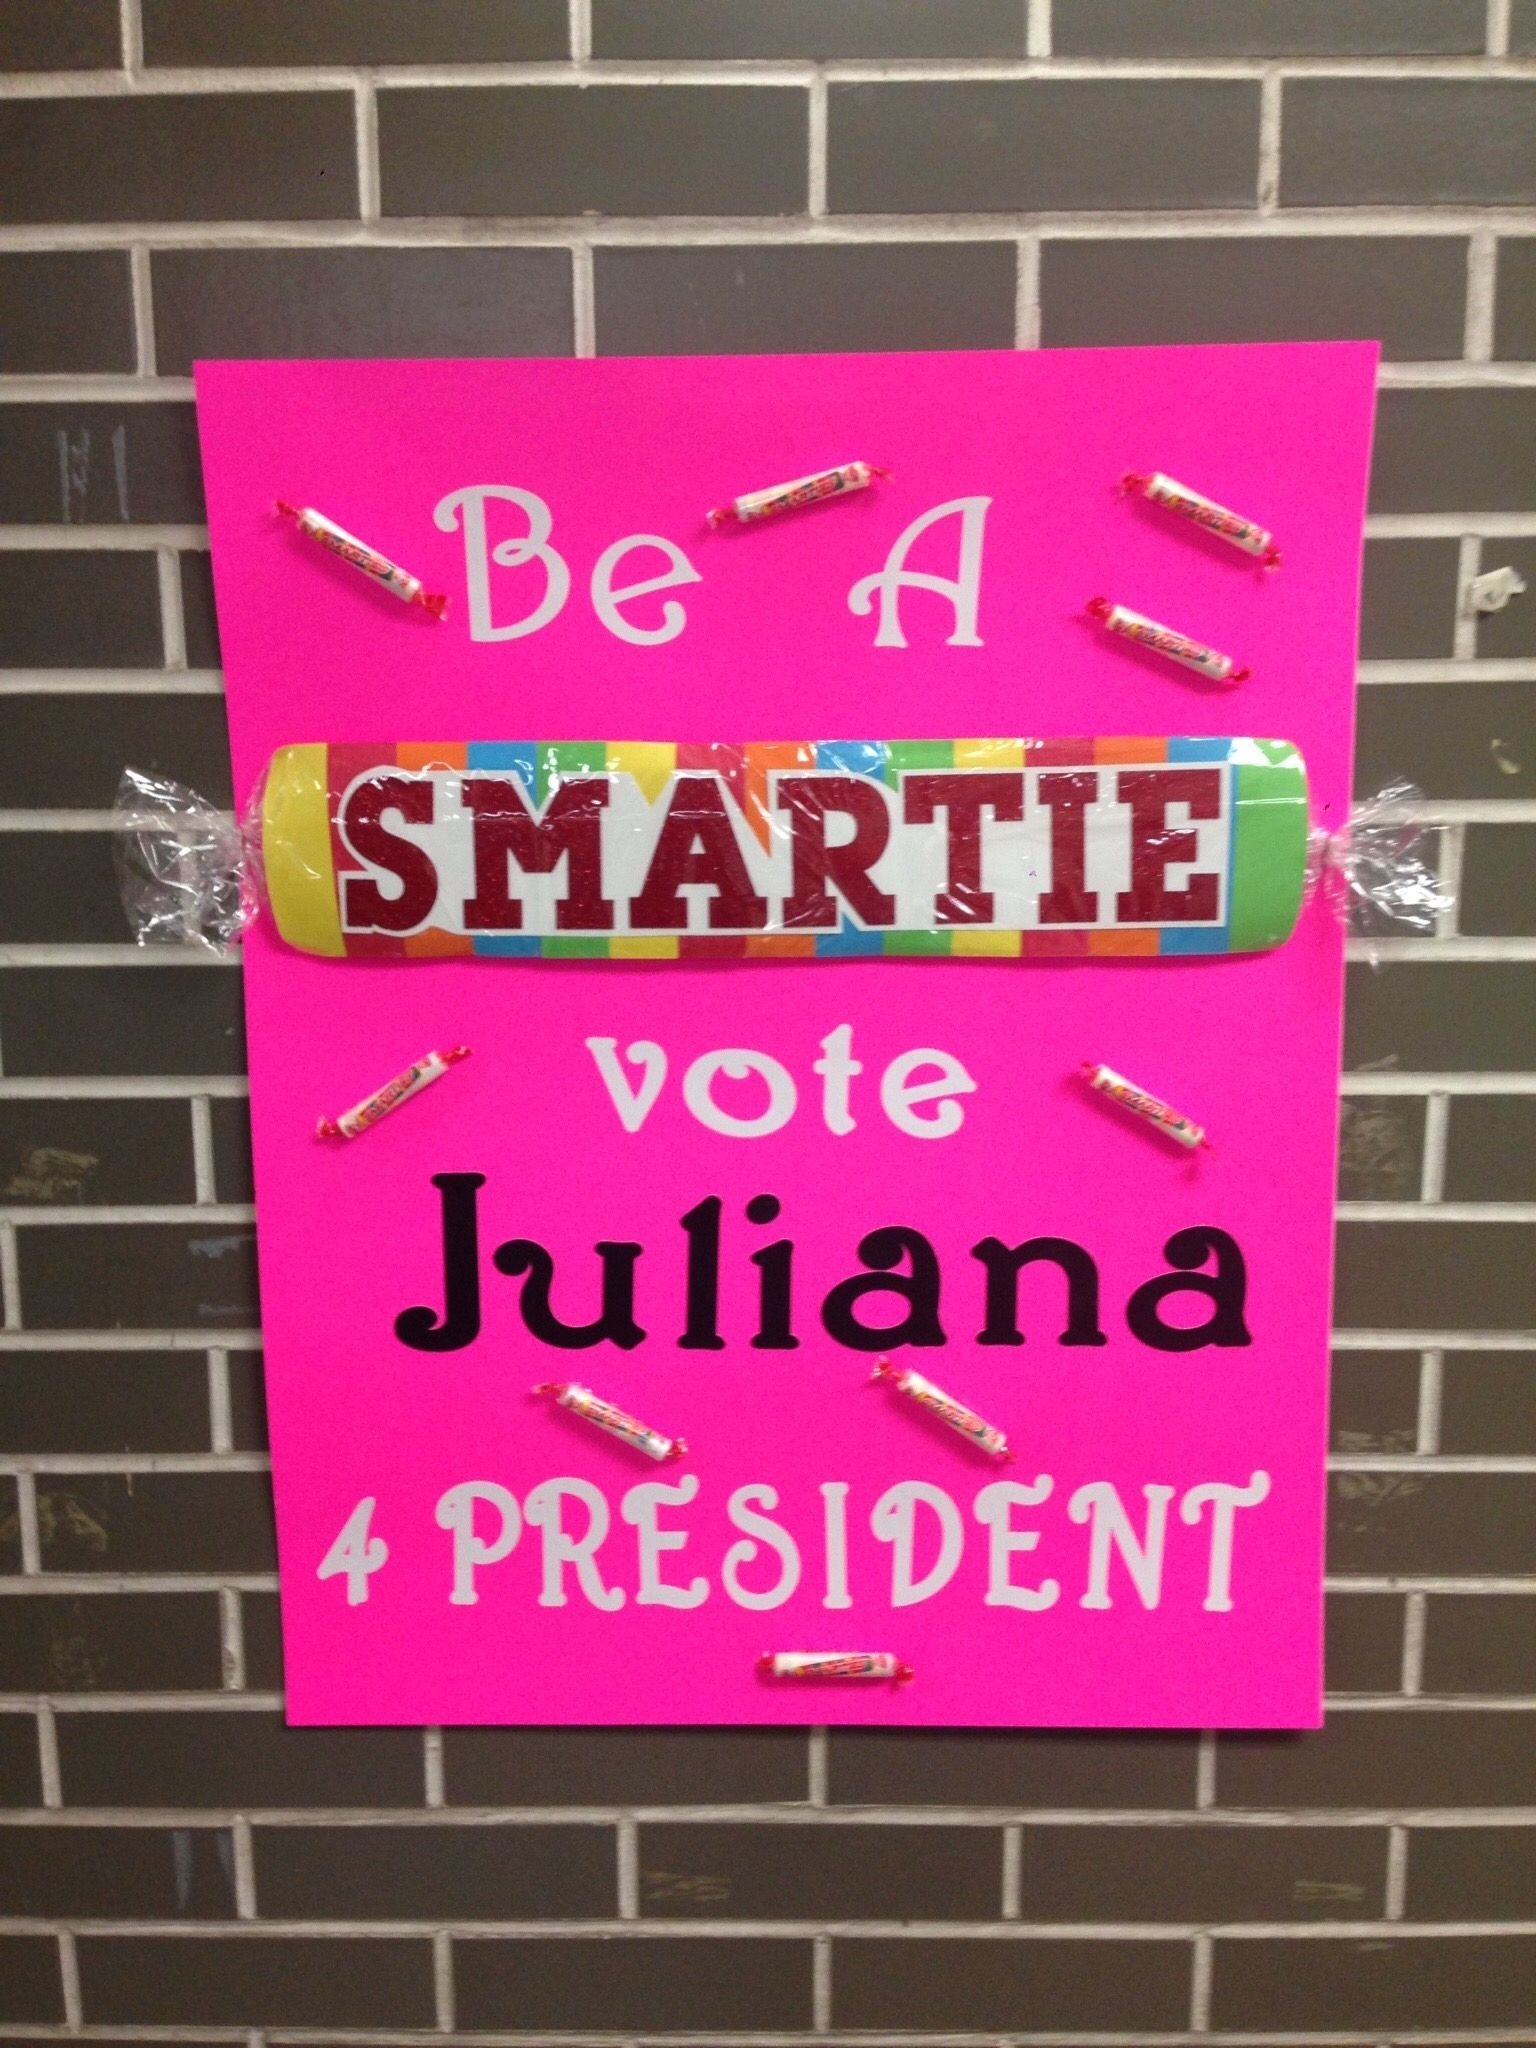 10 Stunning Middle School Student Council Poster Ideas student council election poster juliana pinterest students 15 2021